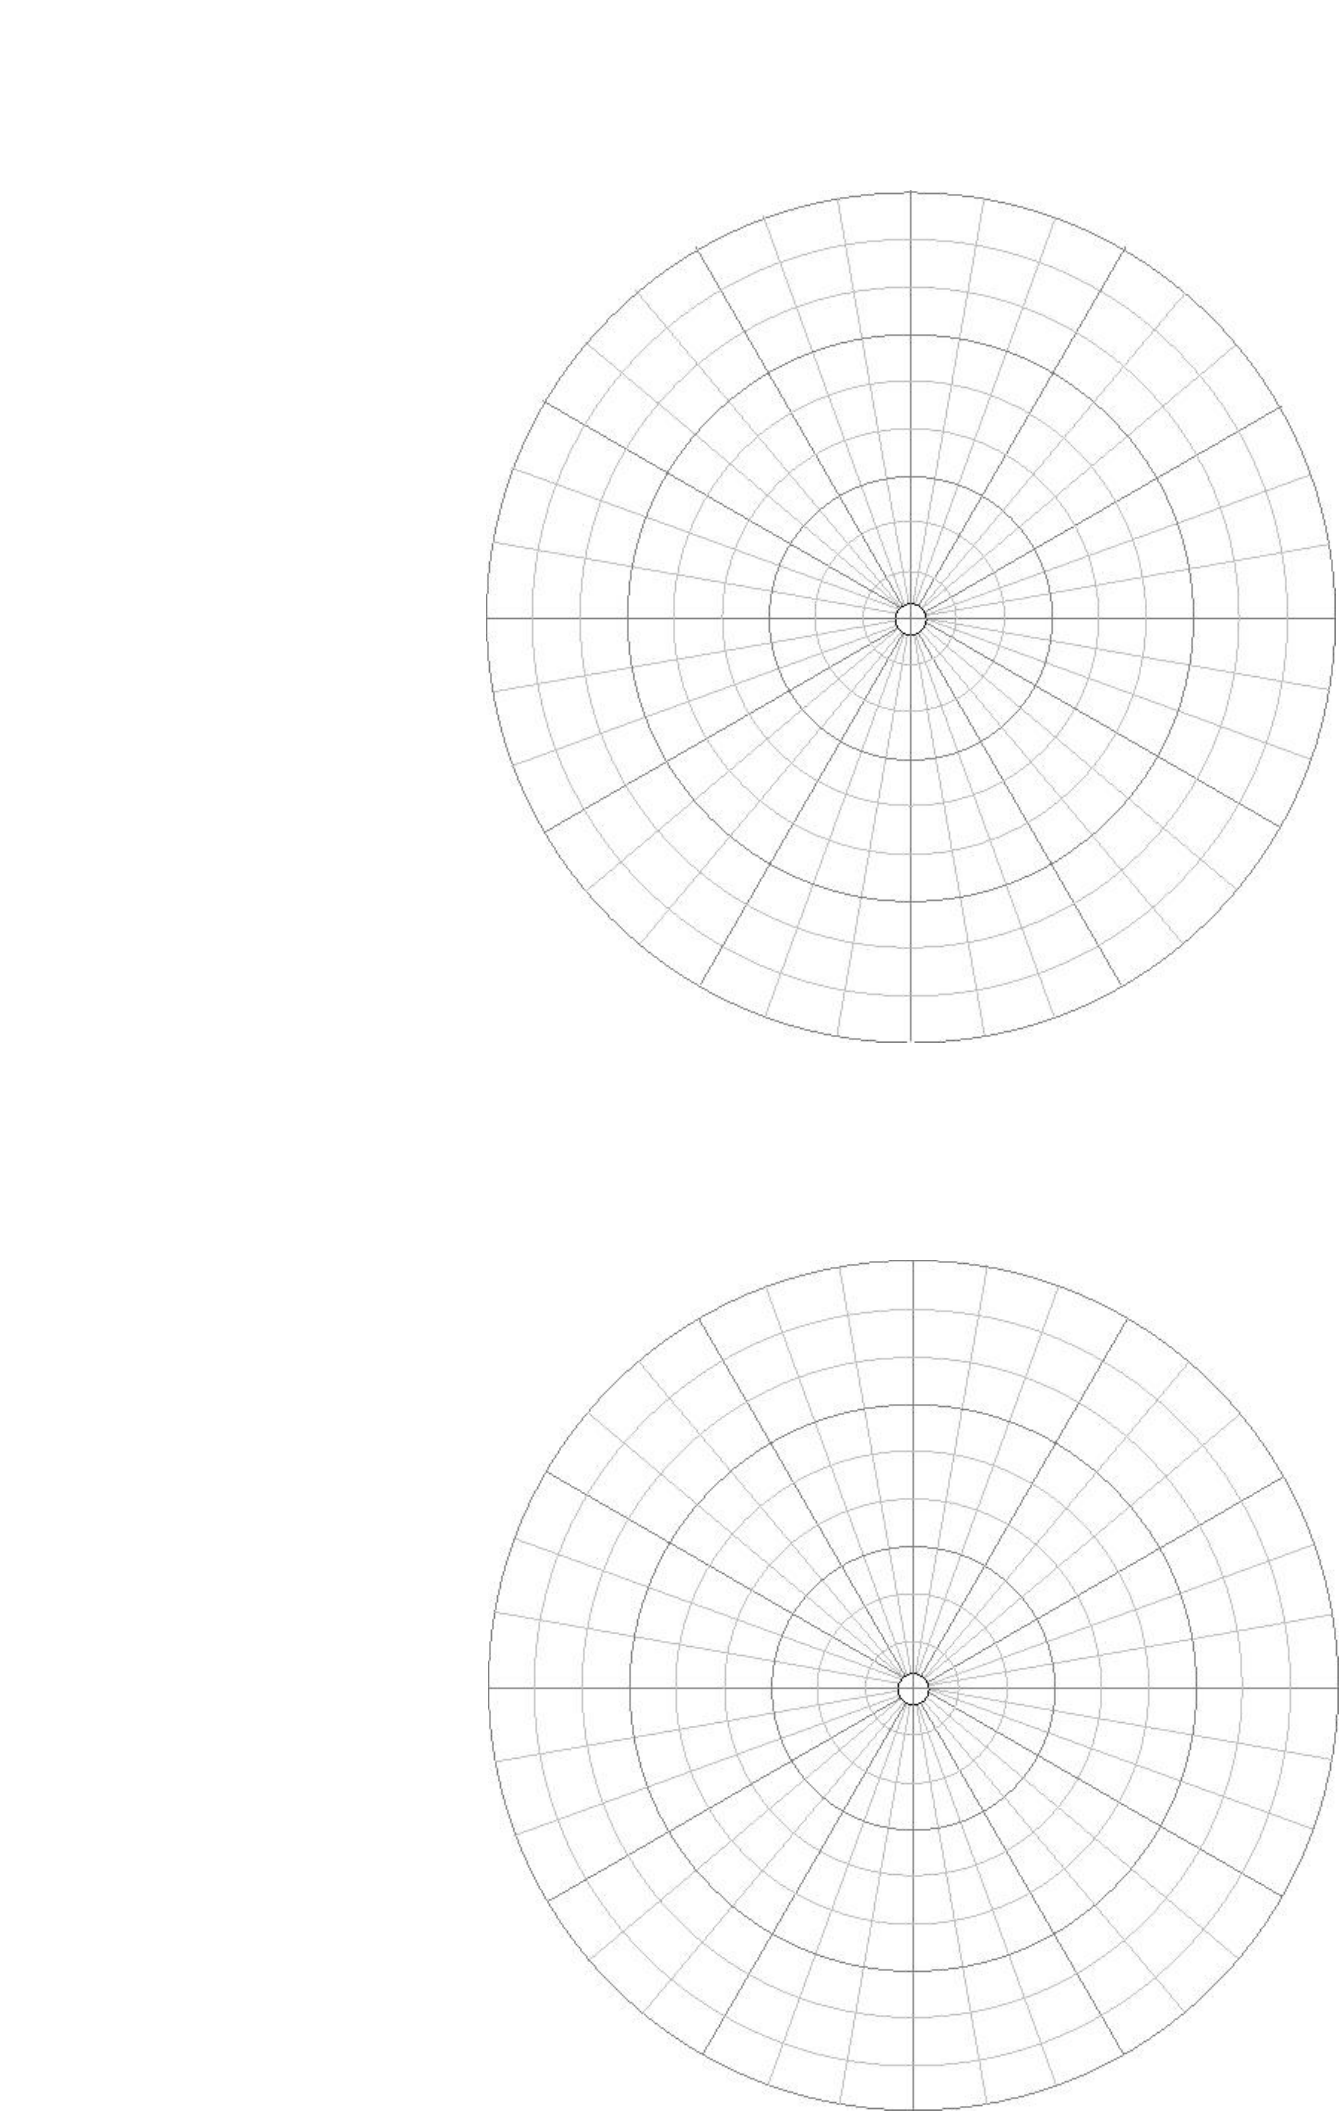 polar coordinate graph paper sample free download